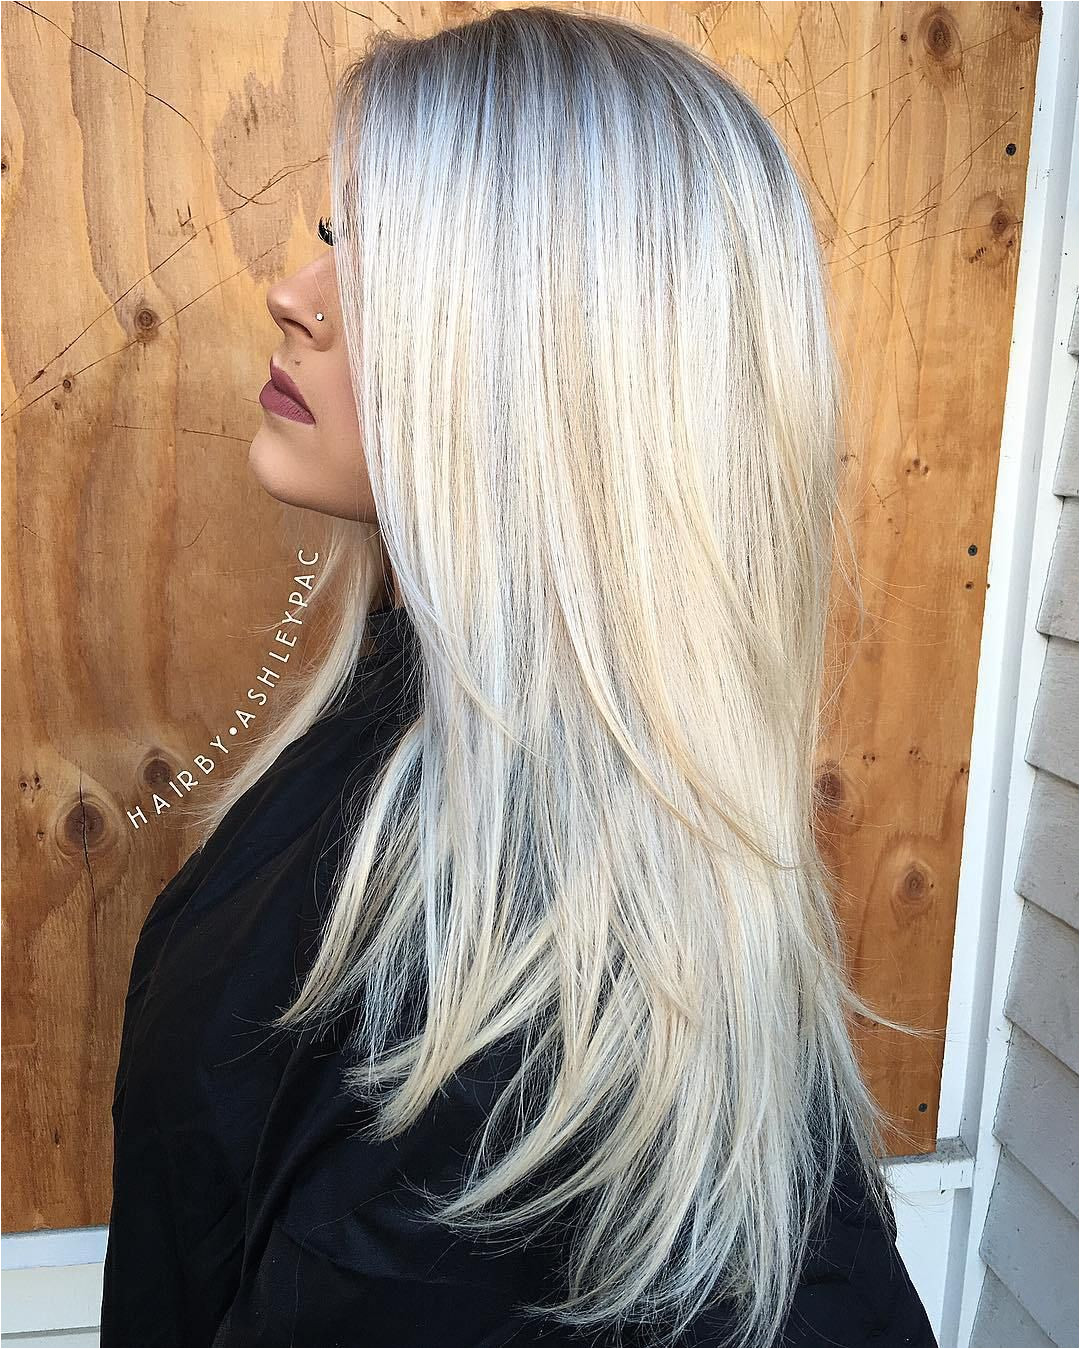 Hairstyle Cuts for Thin Long Hair 40 Long Hairstyles and Haircuts for Fine Hair In 2019